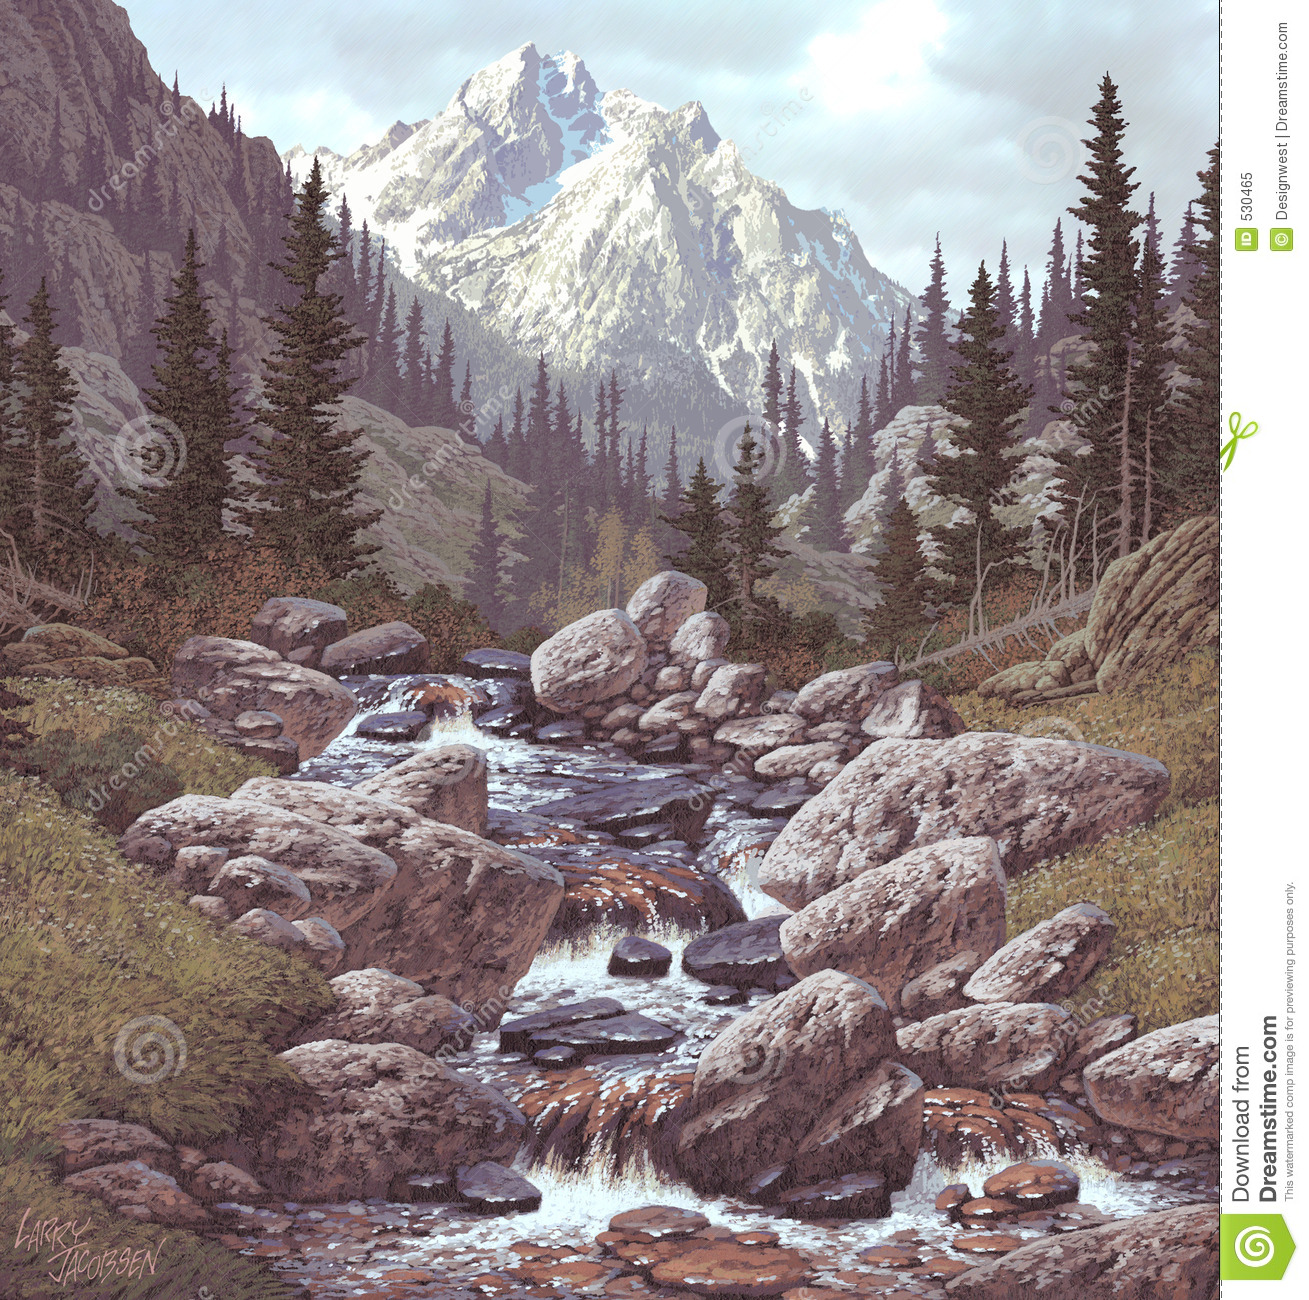 Mountain Stream in the Rockies